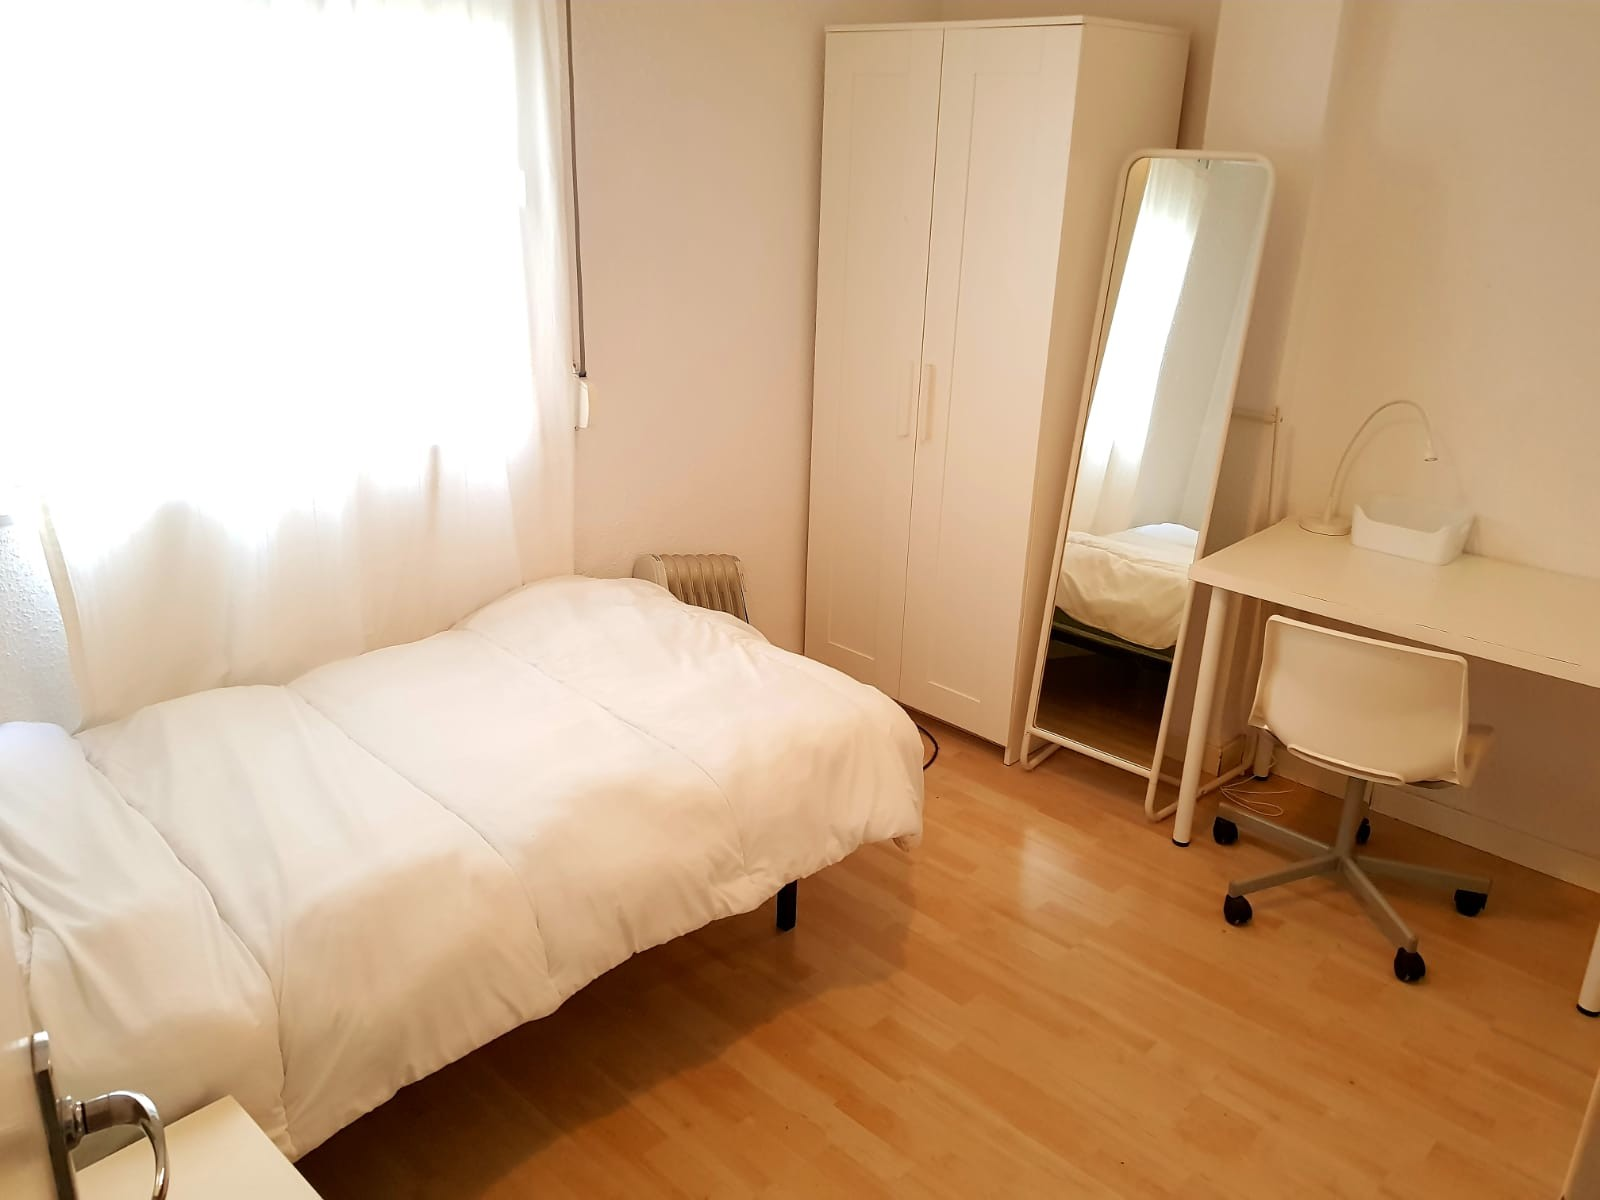 Excellent single room for students in Triana, Sevi